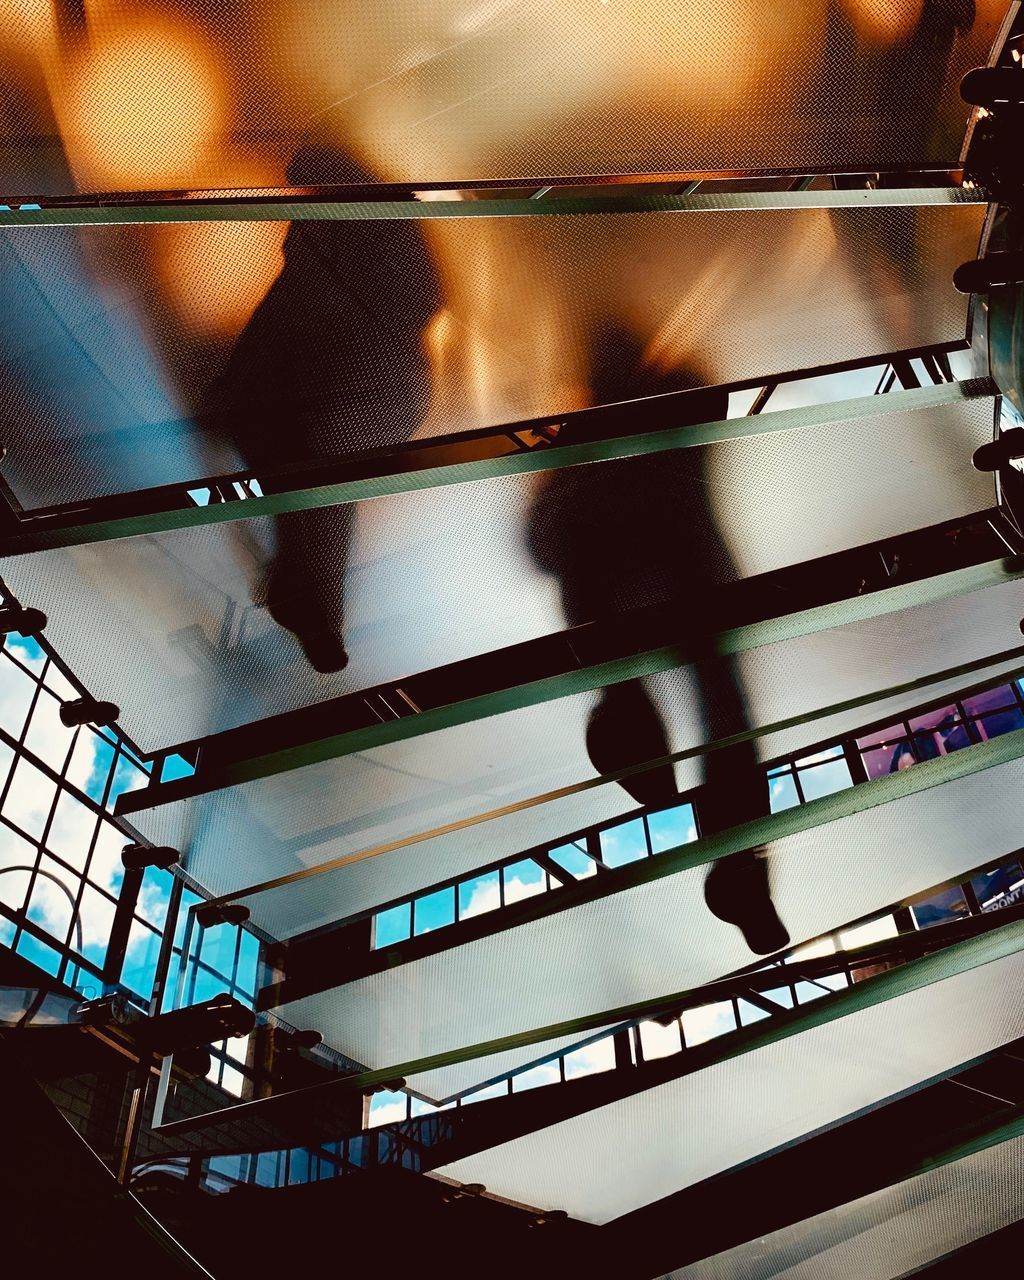 indoors, low angle view, architecture, real people, day, built structure, glass - material, illuminated, sunlight, ceiling, staircase, railing, shadow, lifestyles